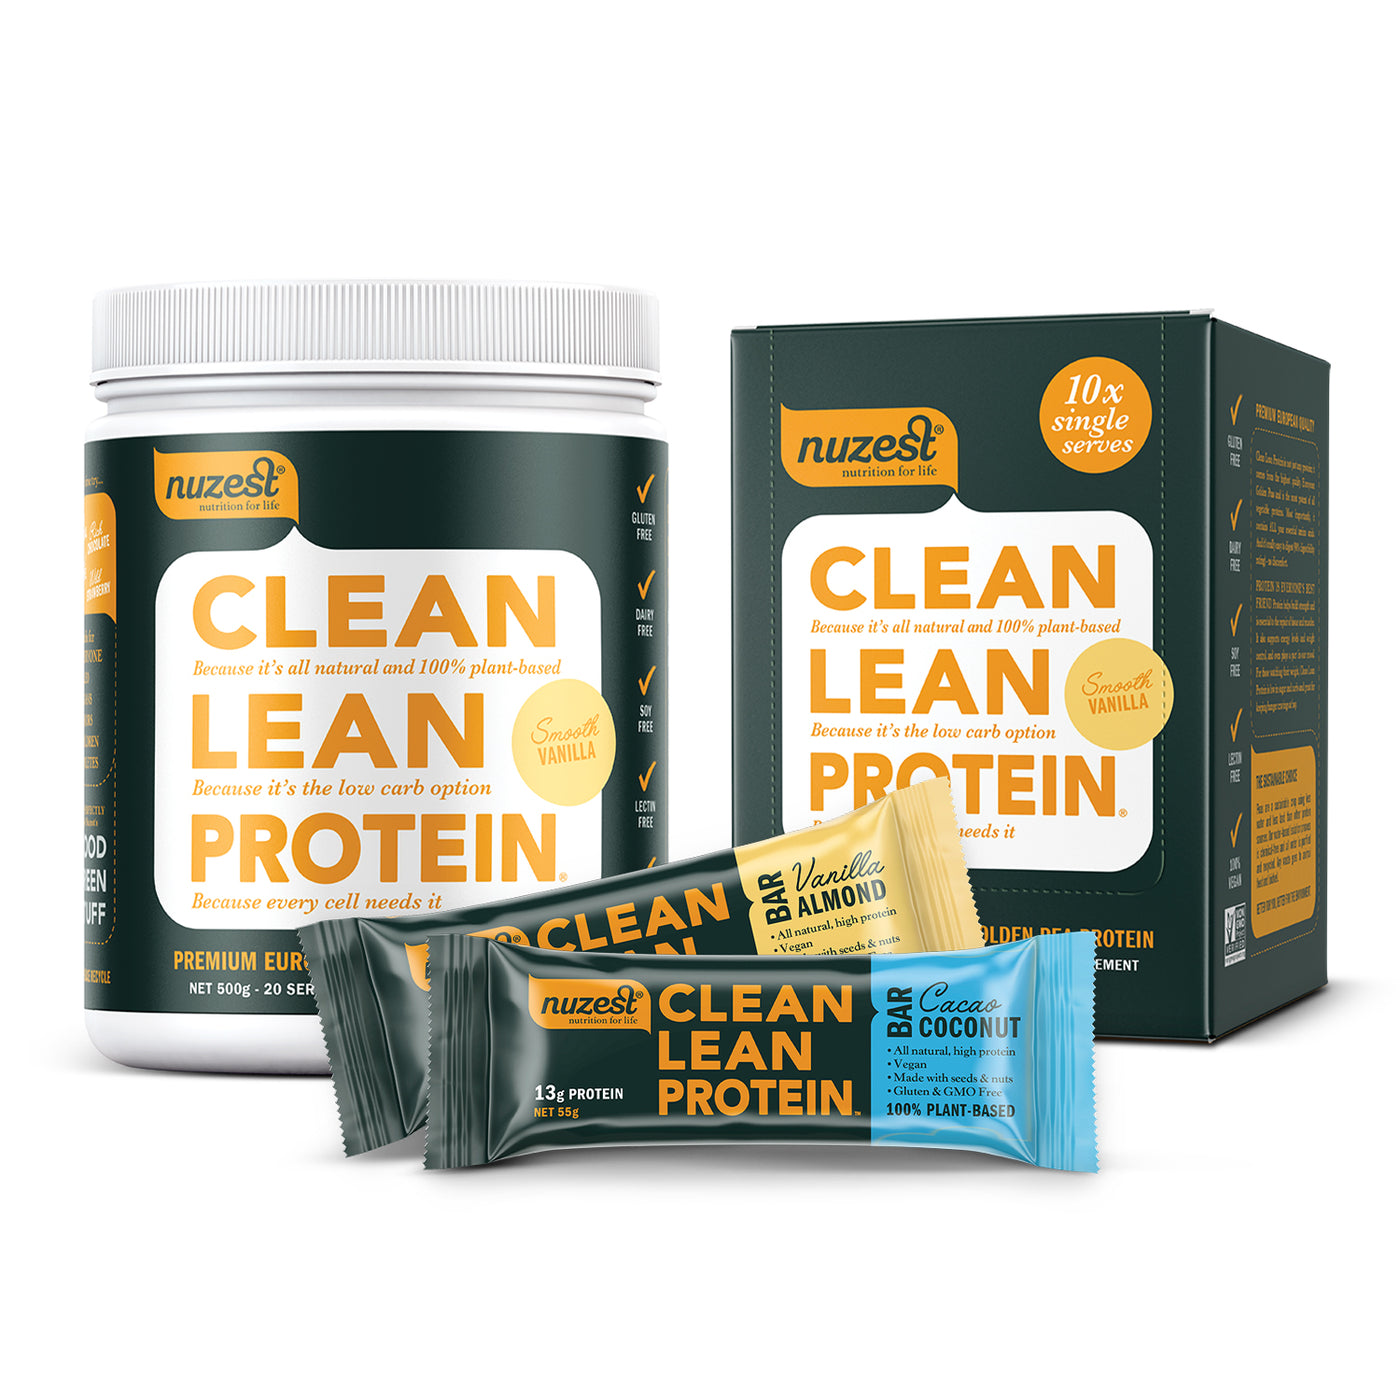 Clean Lean Protein Athletes Pack